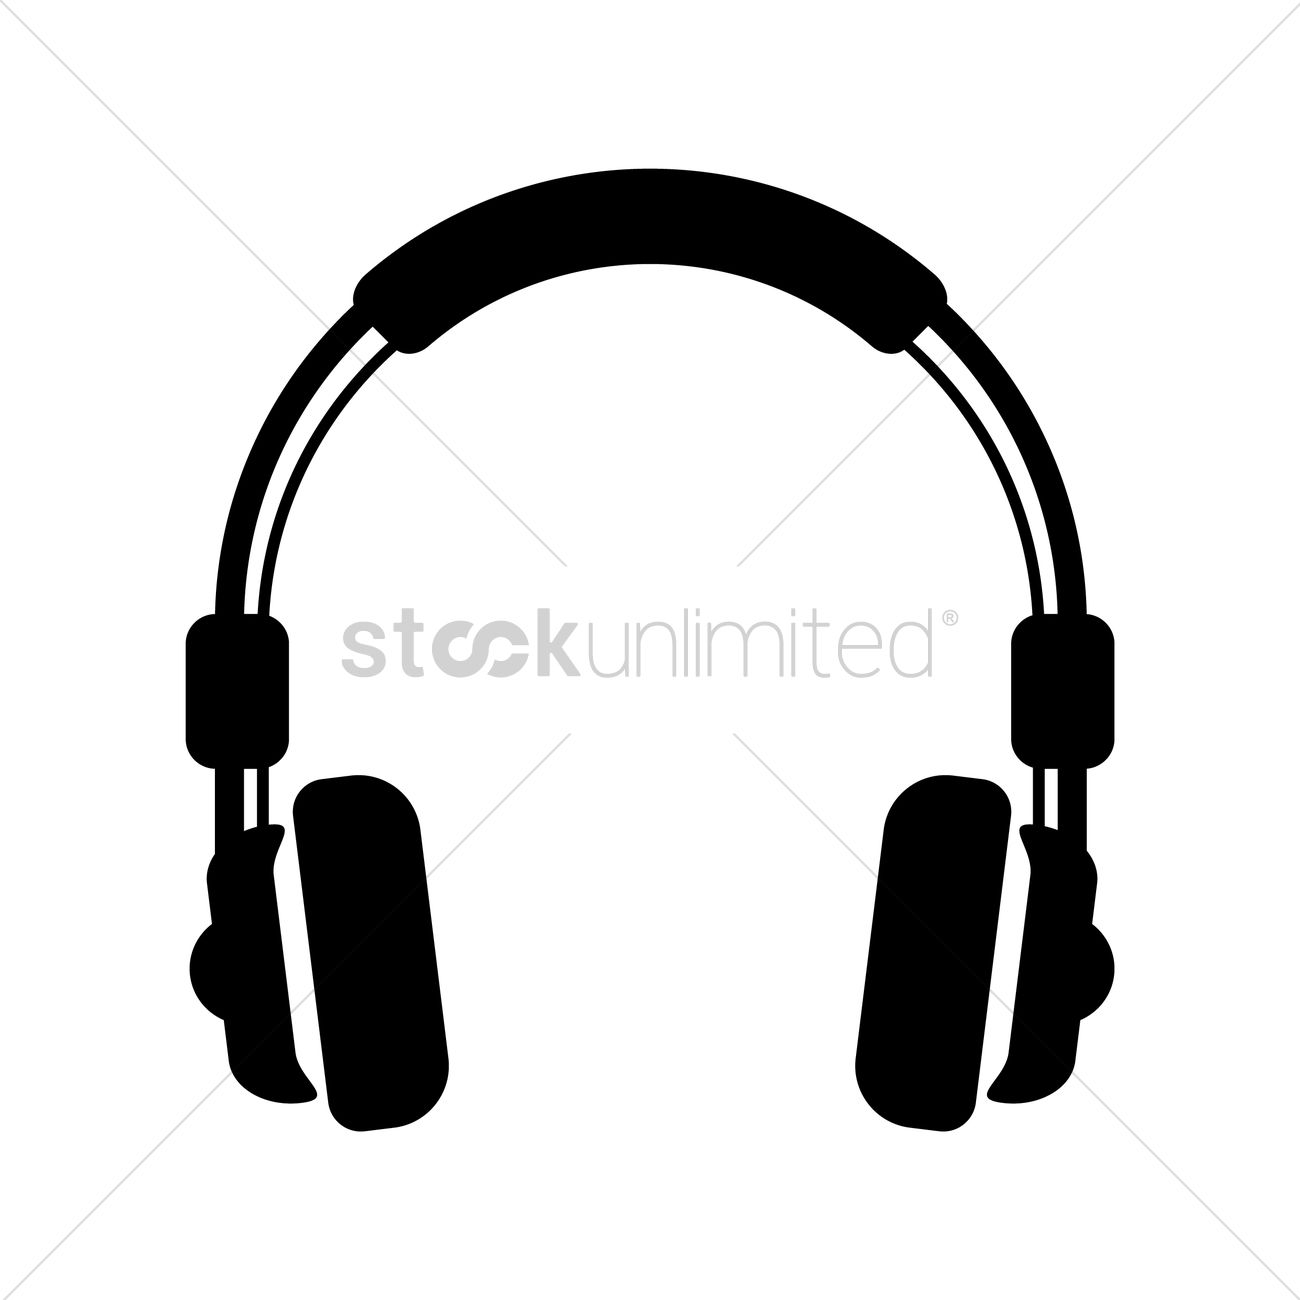 Headphones Vector Image - 1529272 | StockUnlimited